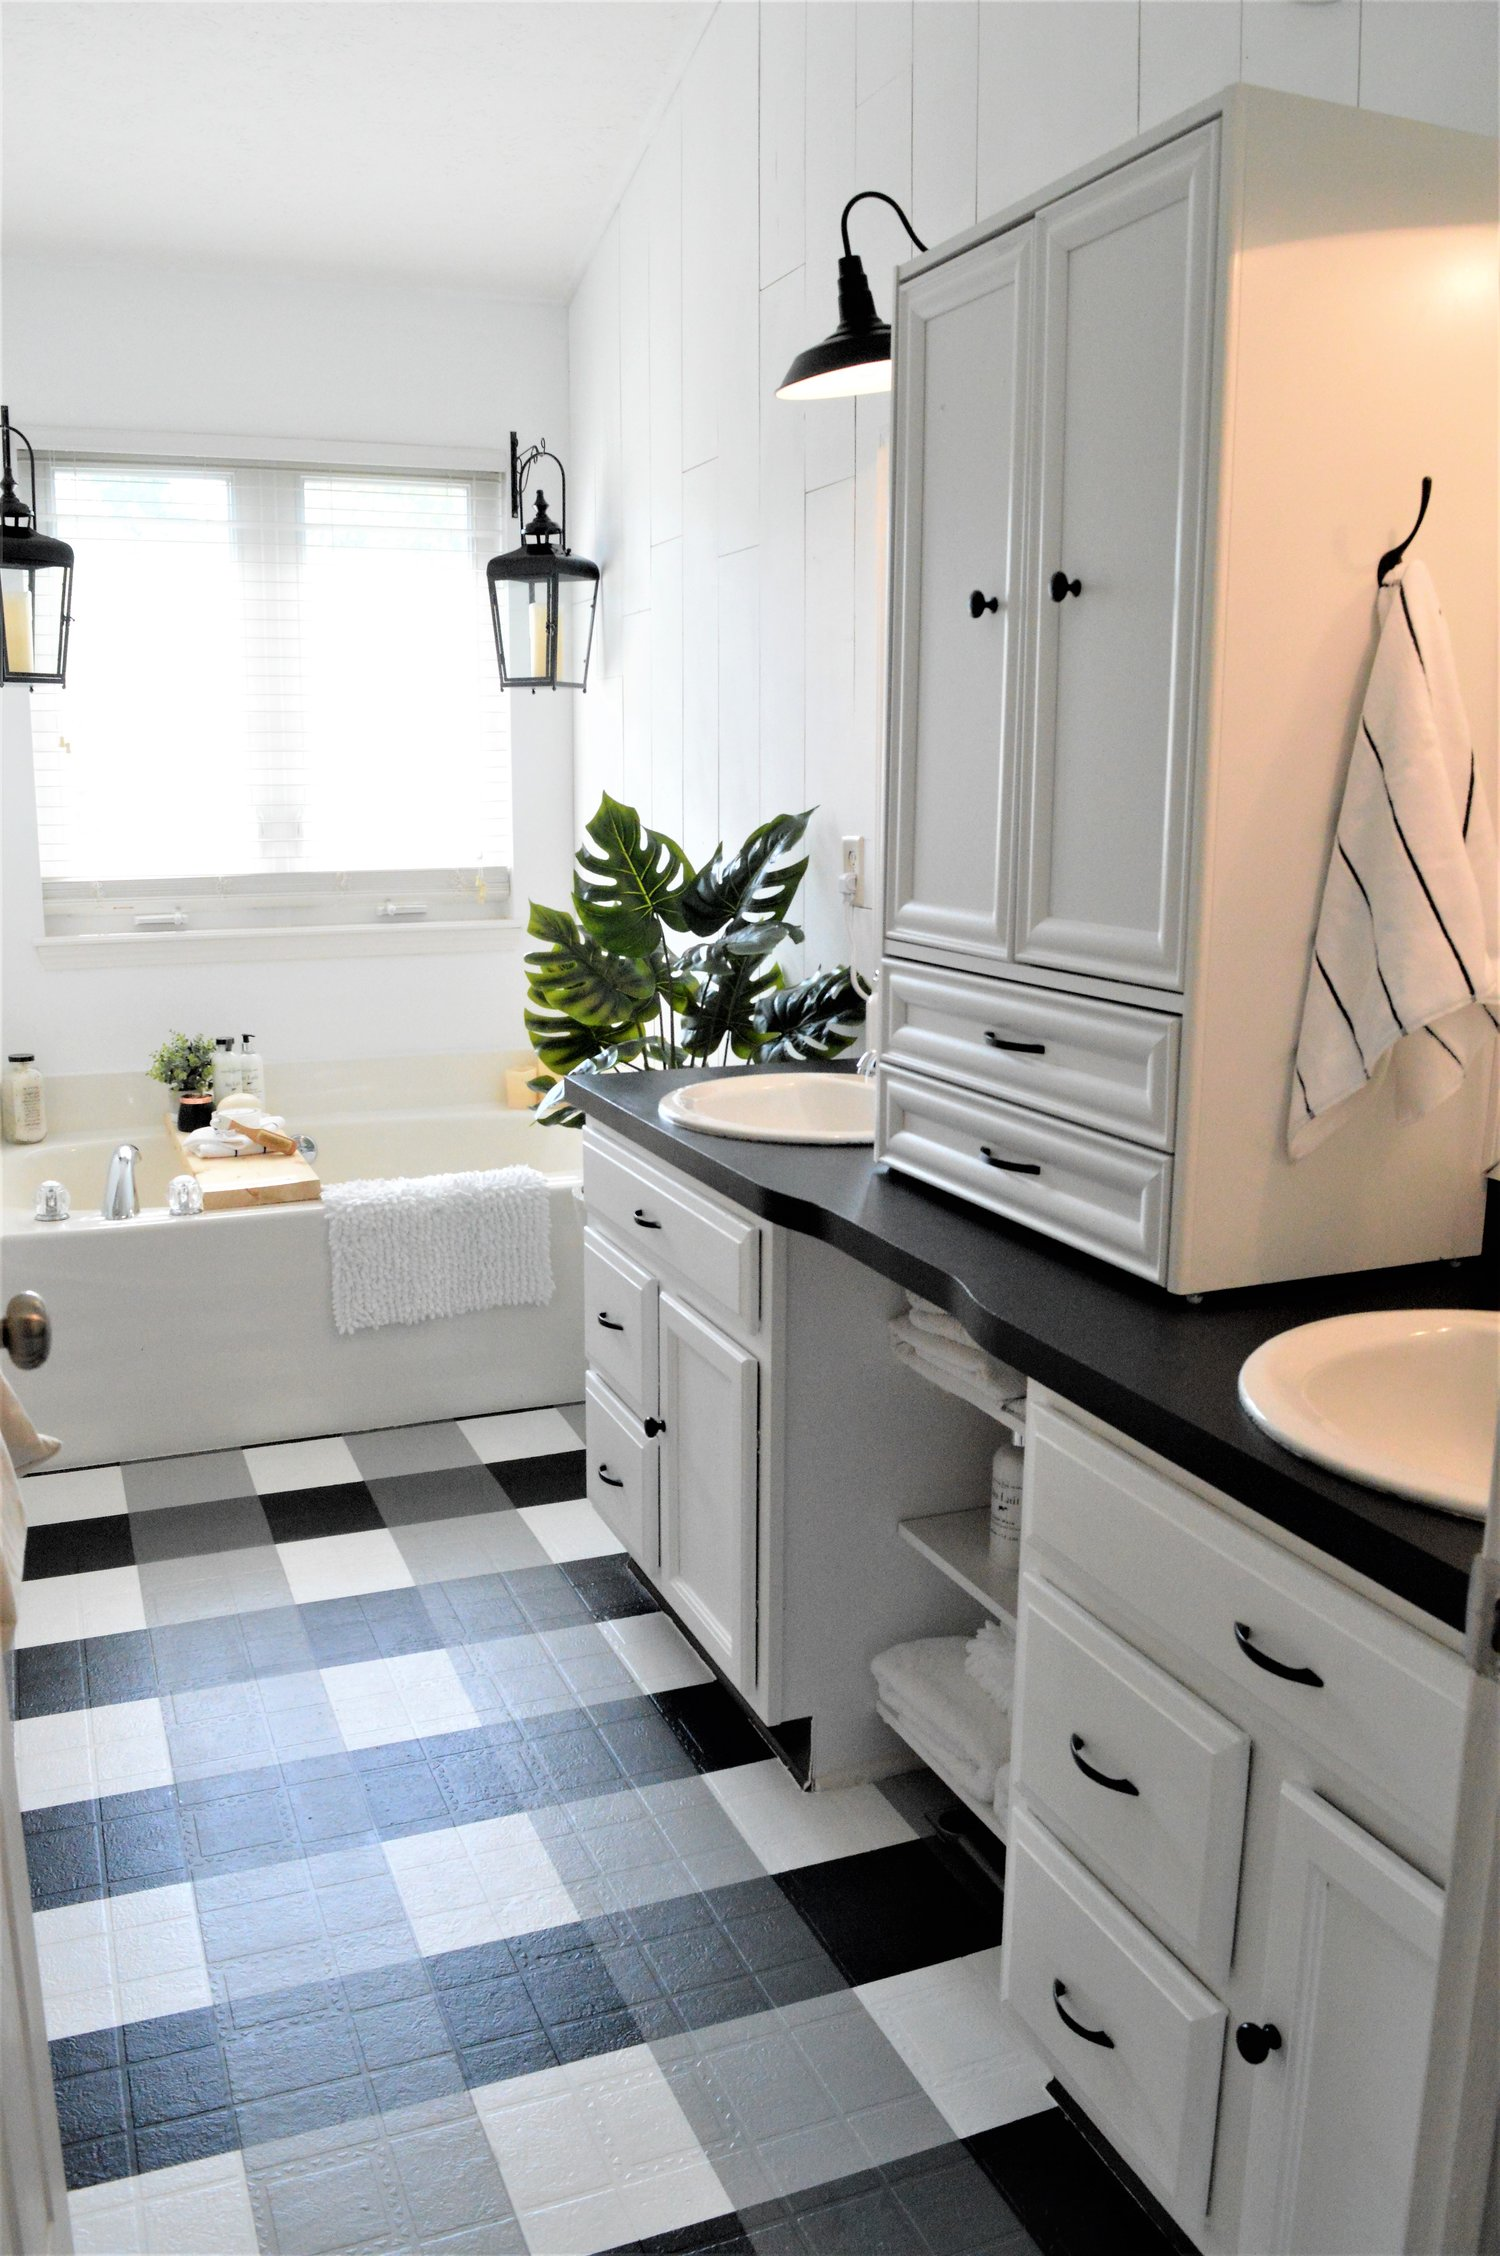 The Other Side Of Neutral Budget Bathroom Makeover with Painted Floor Tutorial